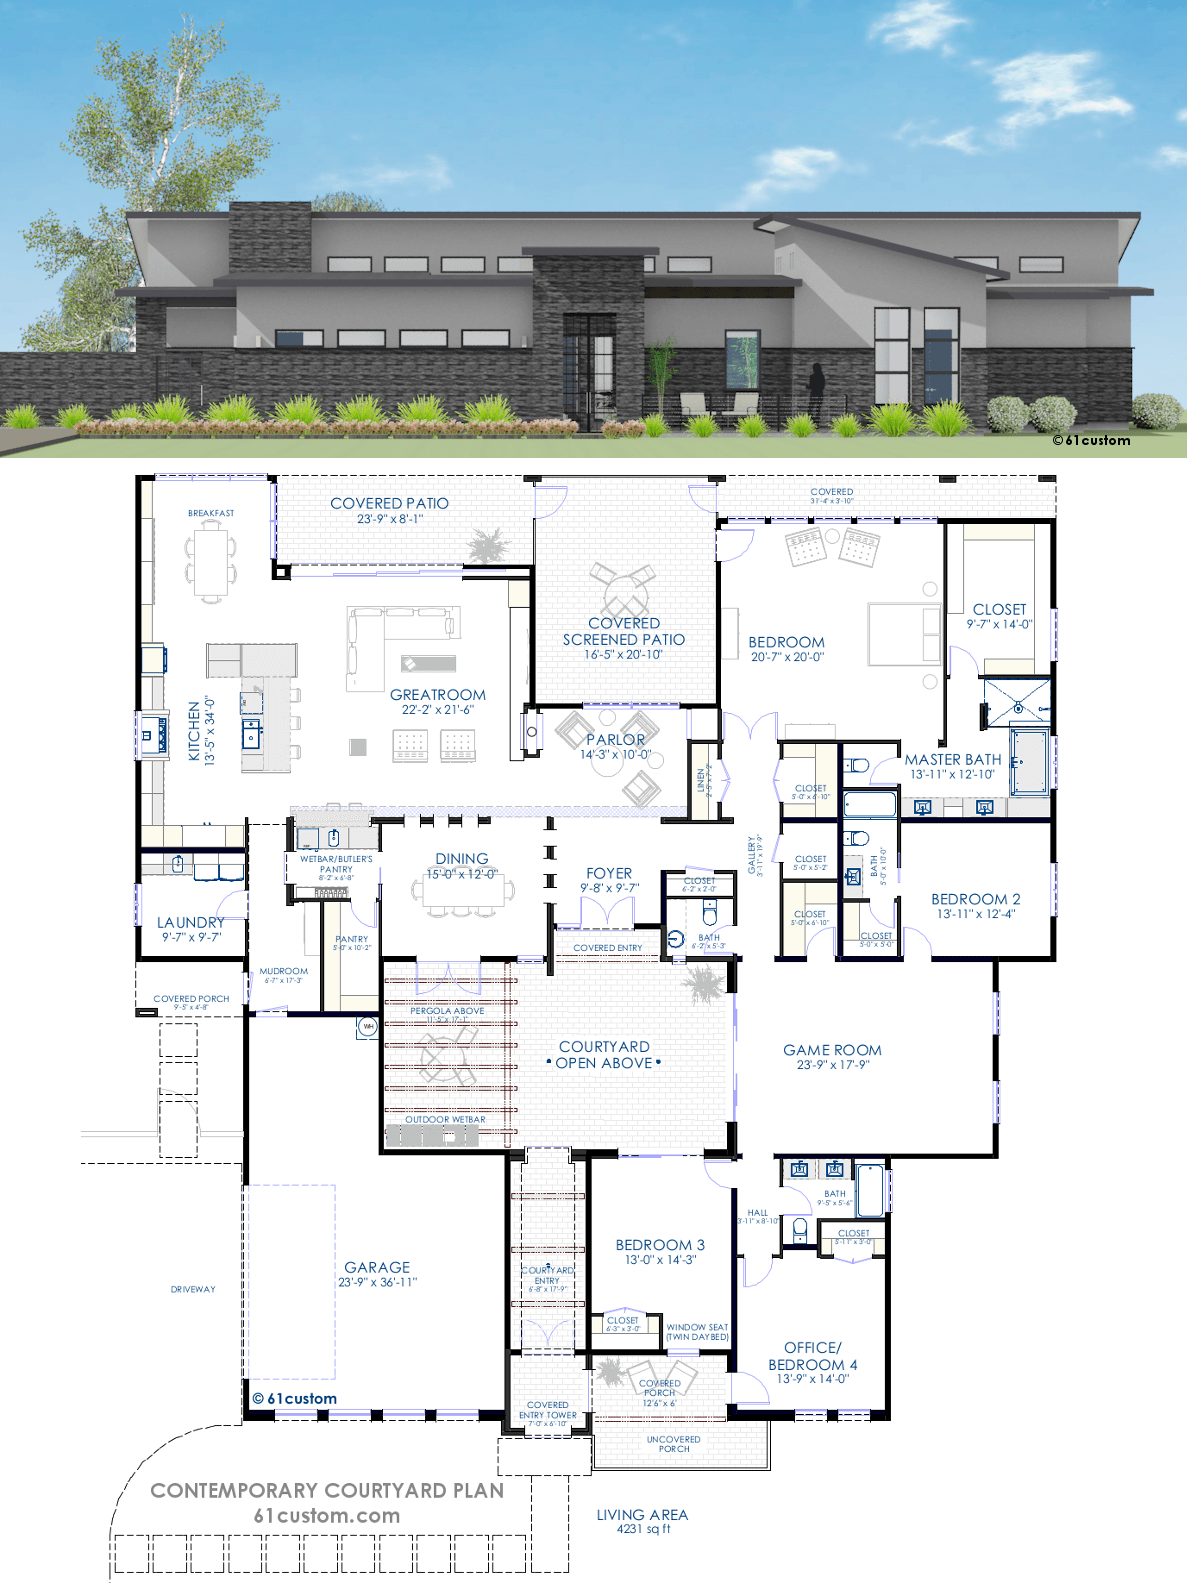 home plans design contemporary courtyard house plan 61custom modern 12378